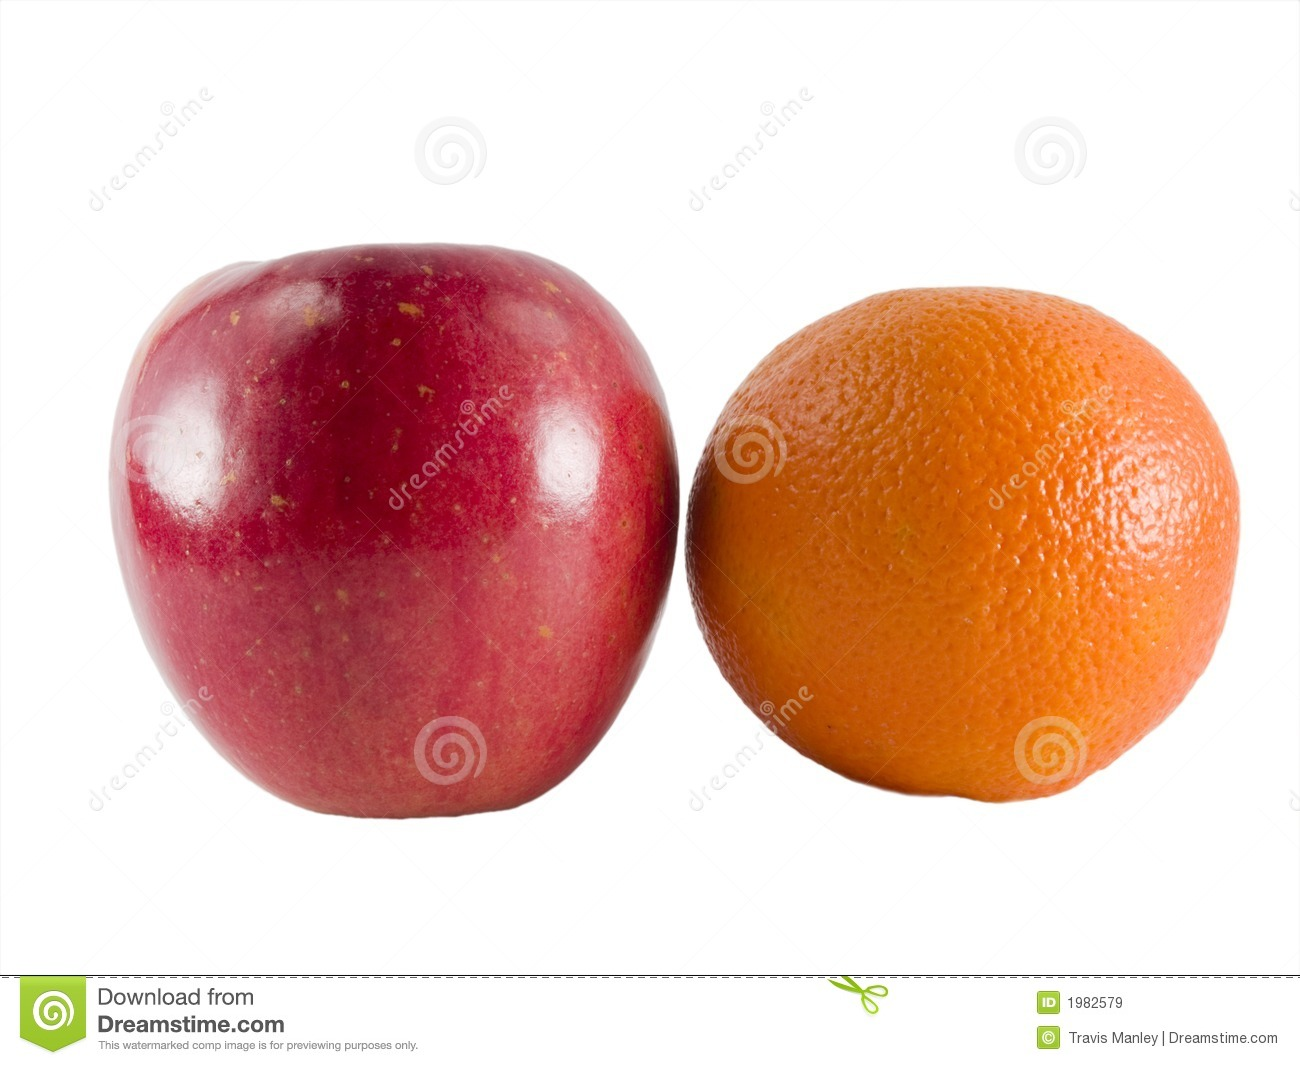 apples and oranges comparison essay This 783 word essay is about apples vs oranges no two things could be more different than apples and oranges just by looking at read the full essay now.